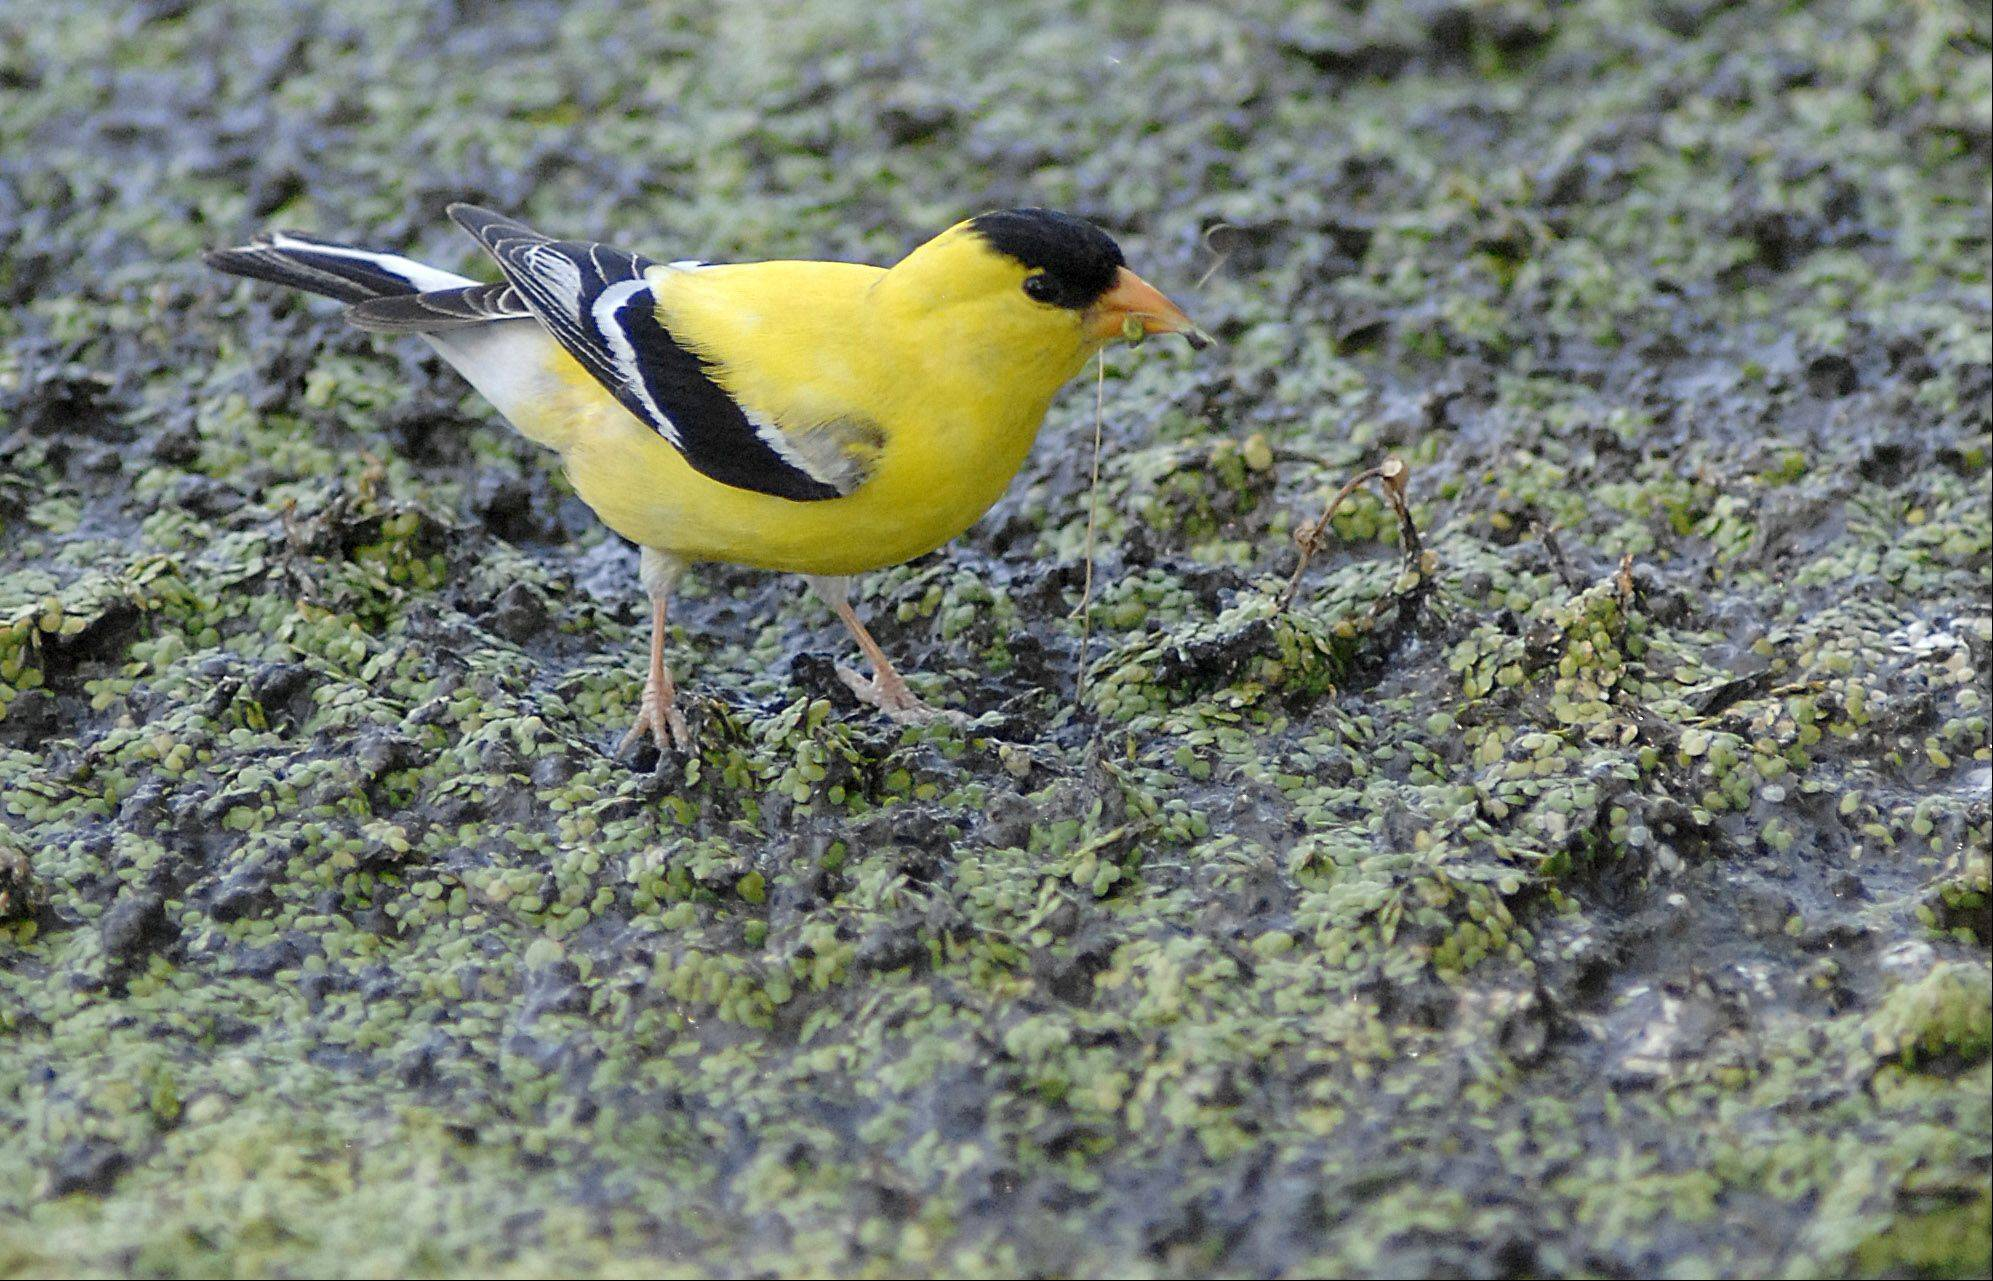 An American Goldfinch pokes around duckweed near Boy Scout Island in St. Charles. The bird's most common natural habitat is weedy fields and floodplains, but with the drought, creatures of all kinds are seeking water wherever they can find it.